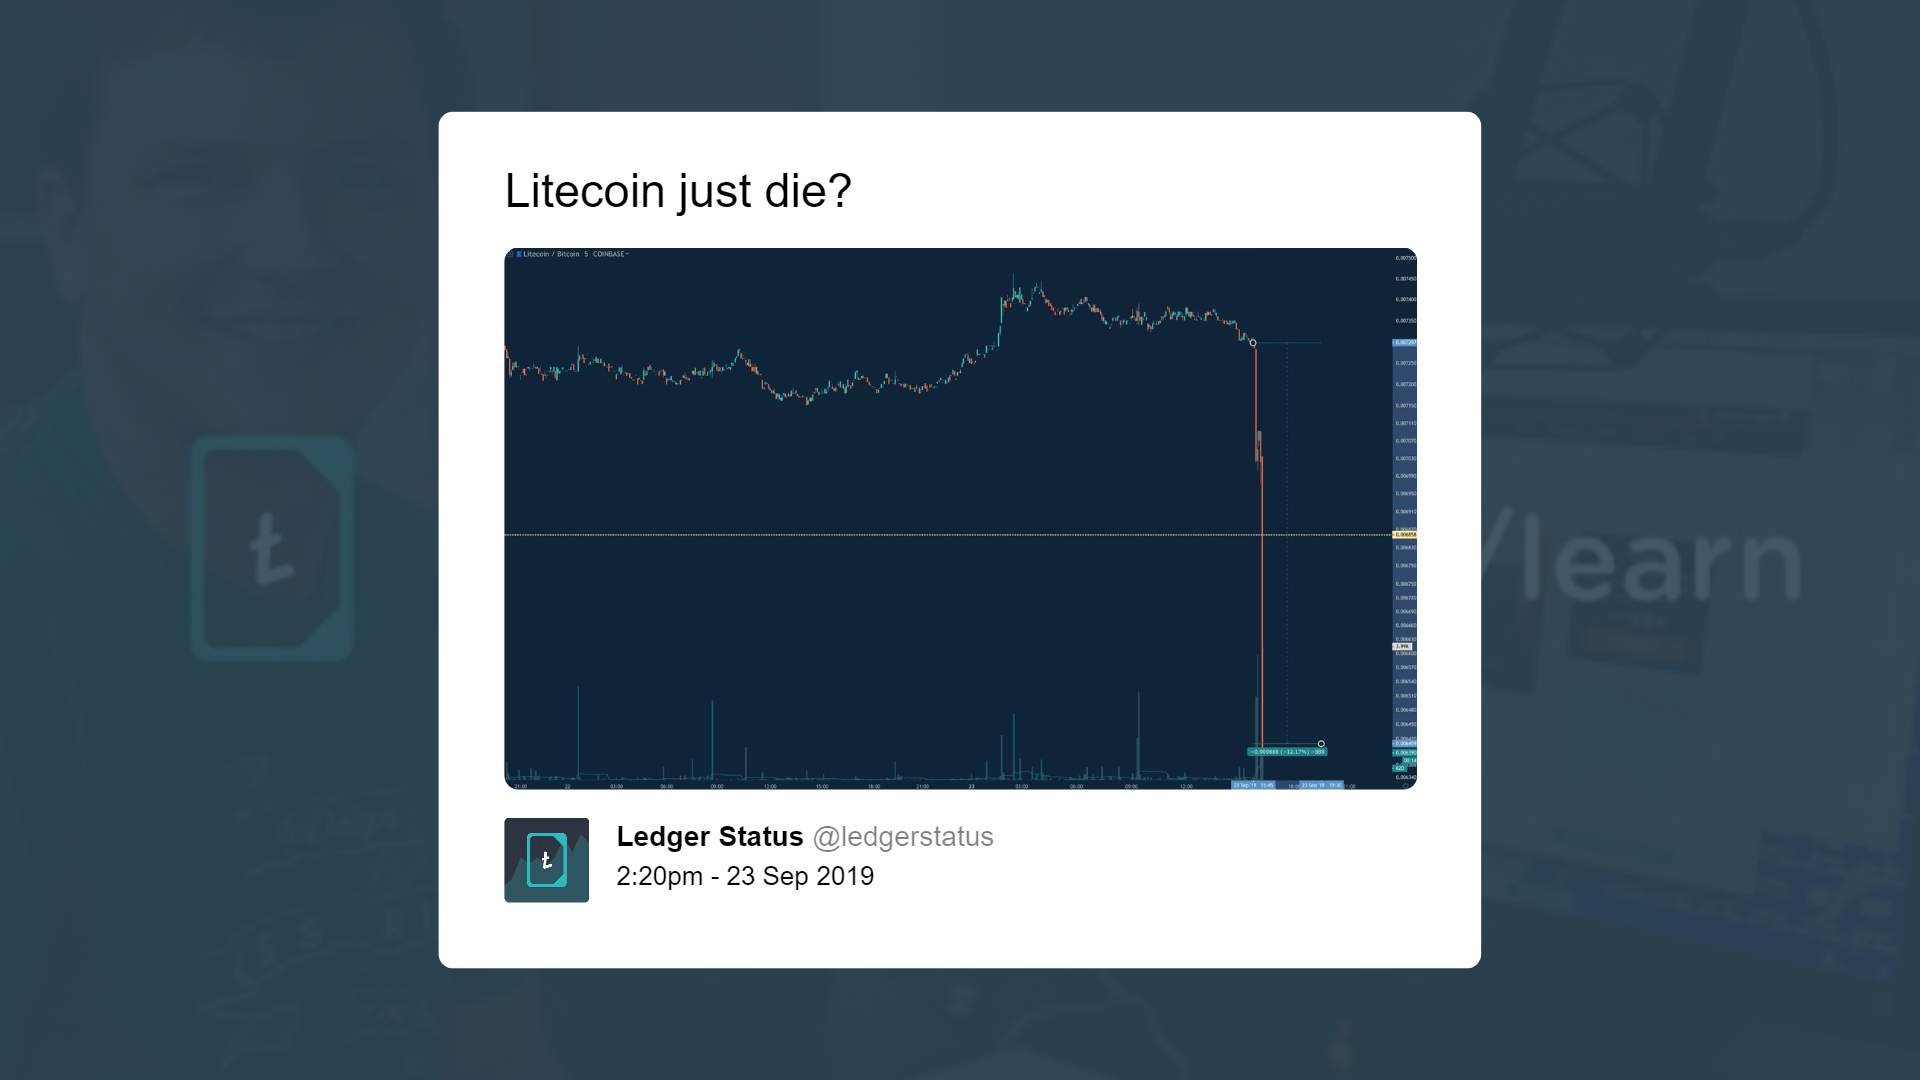 Litecoin Price Tanks By 8% in Minutes as Bitcoin Shows Weakness 14